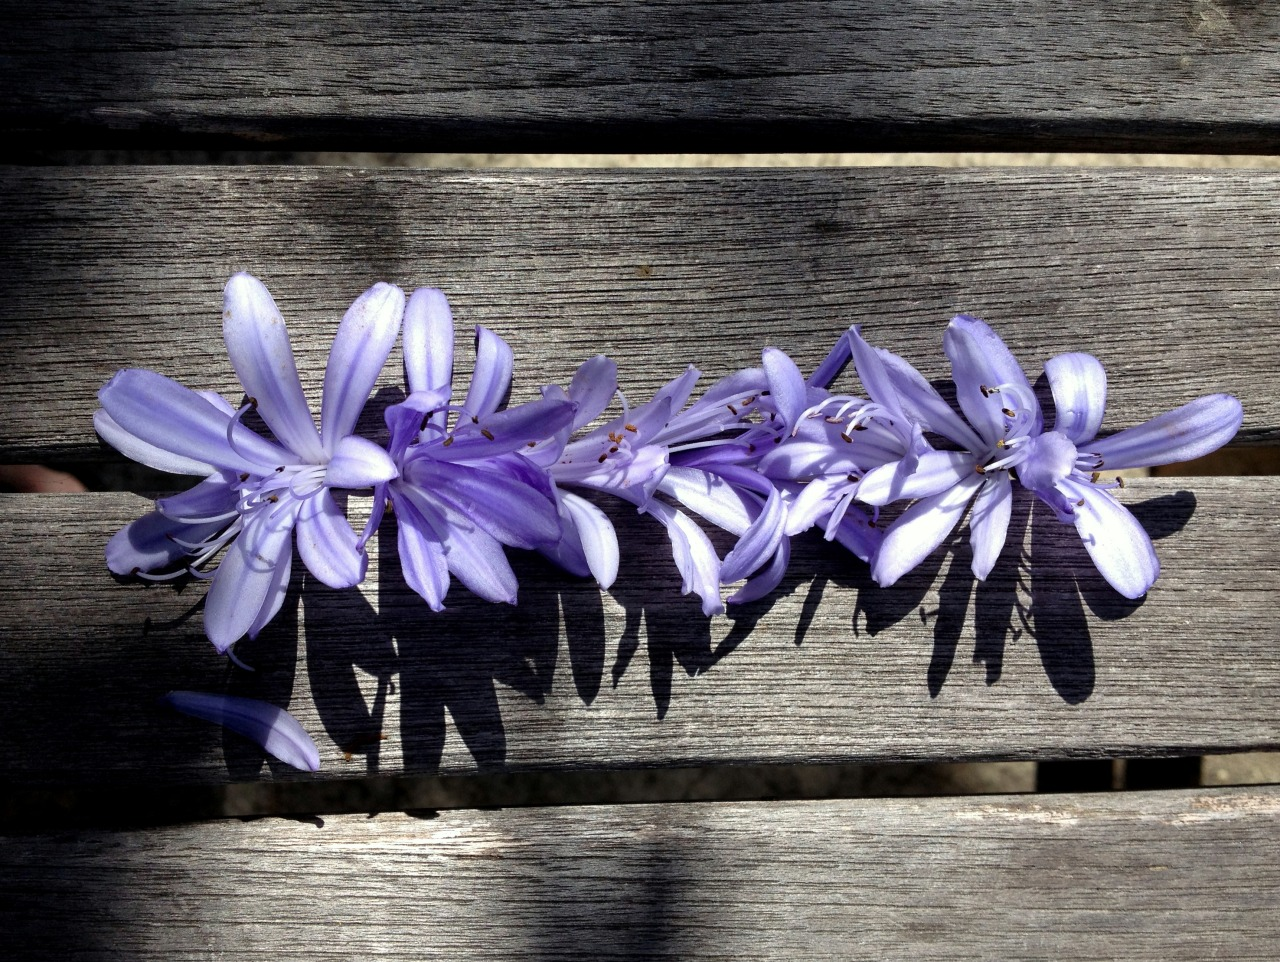 July 6, 2013    Park bench in Santa Barbara  dressed up  with agapanthus florets.